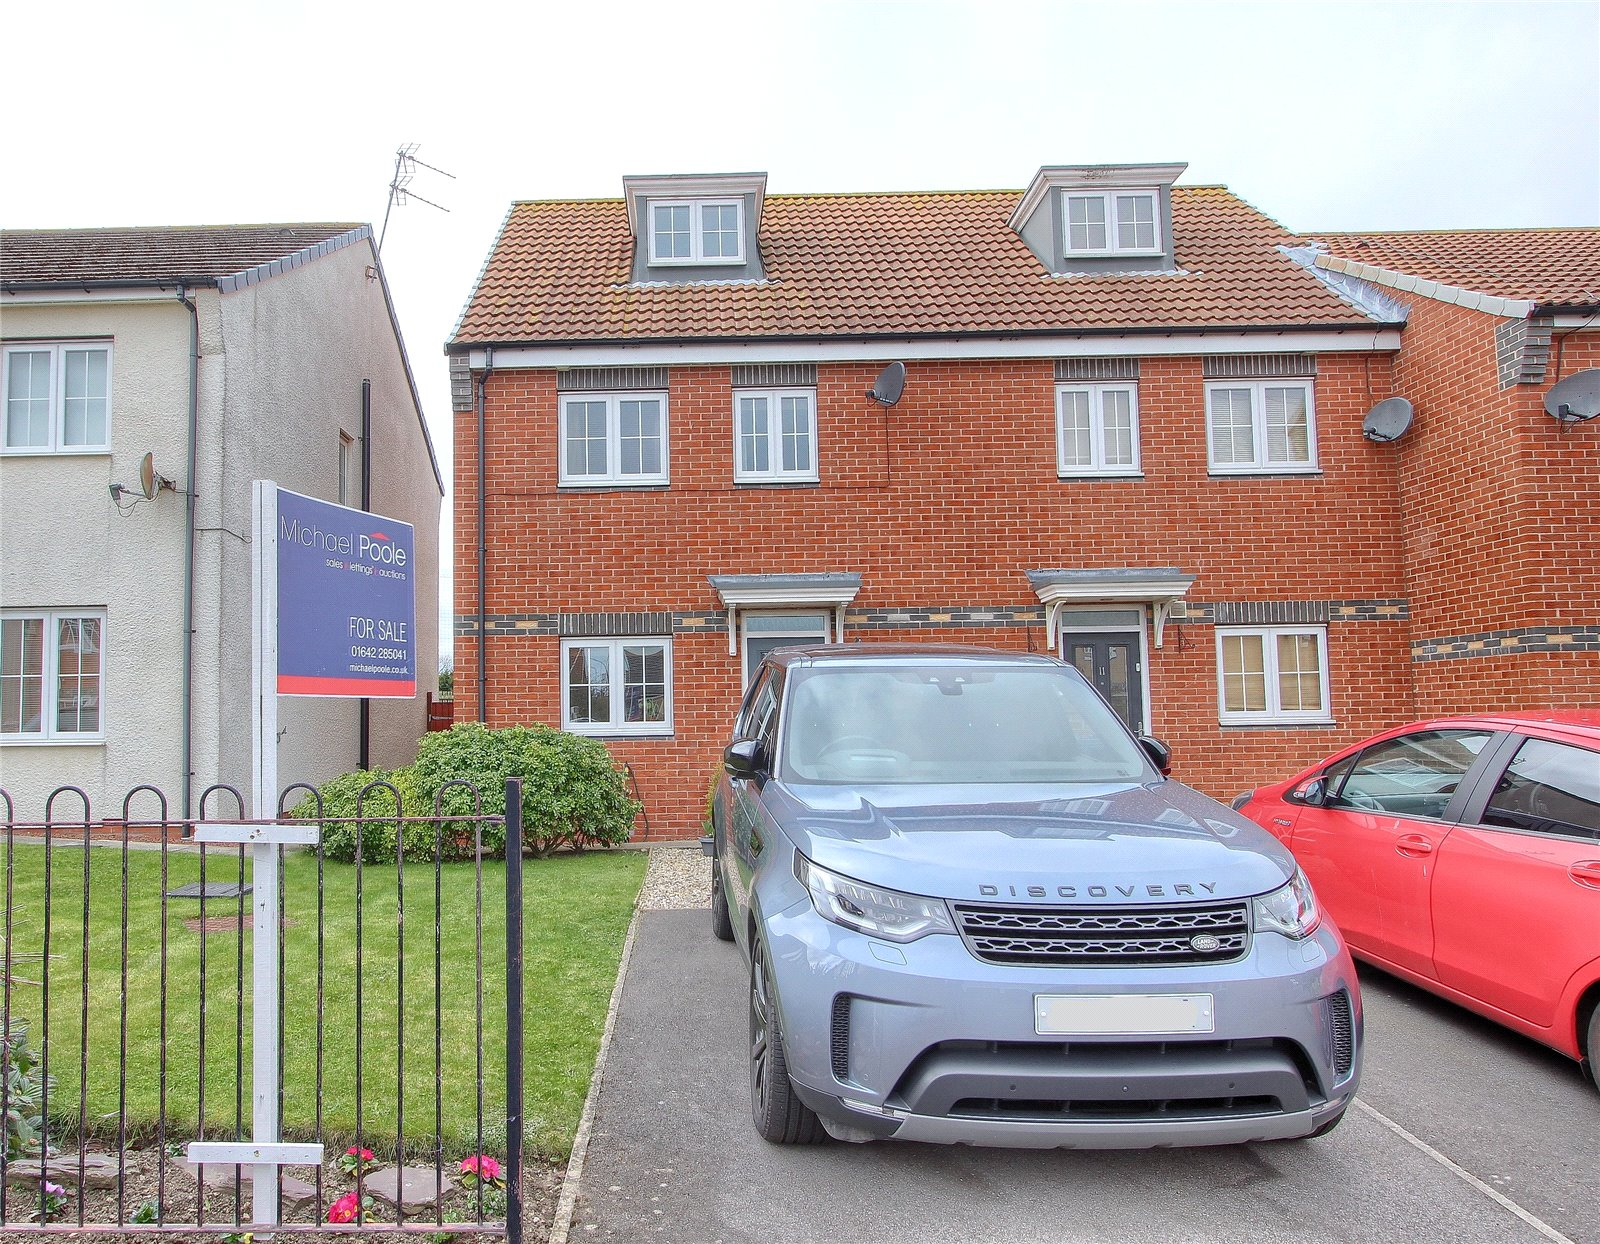 3 bed house for sale in Greenfield Mews, Marske-by-the-Sea  - Property Image 1